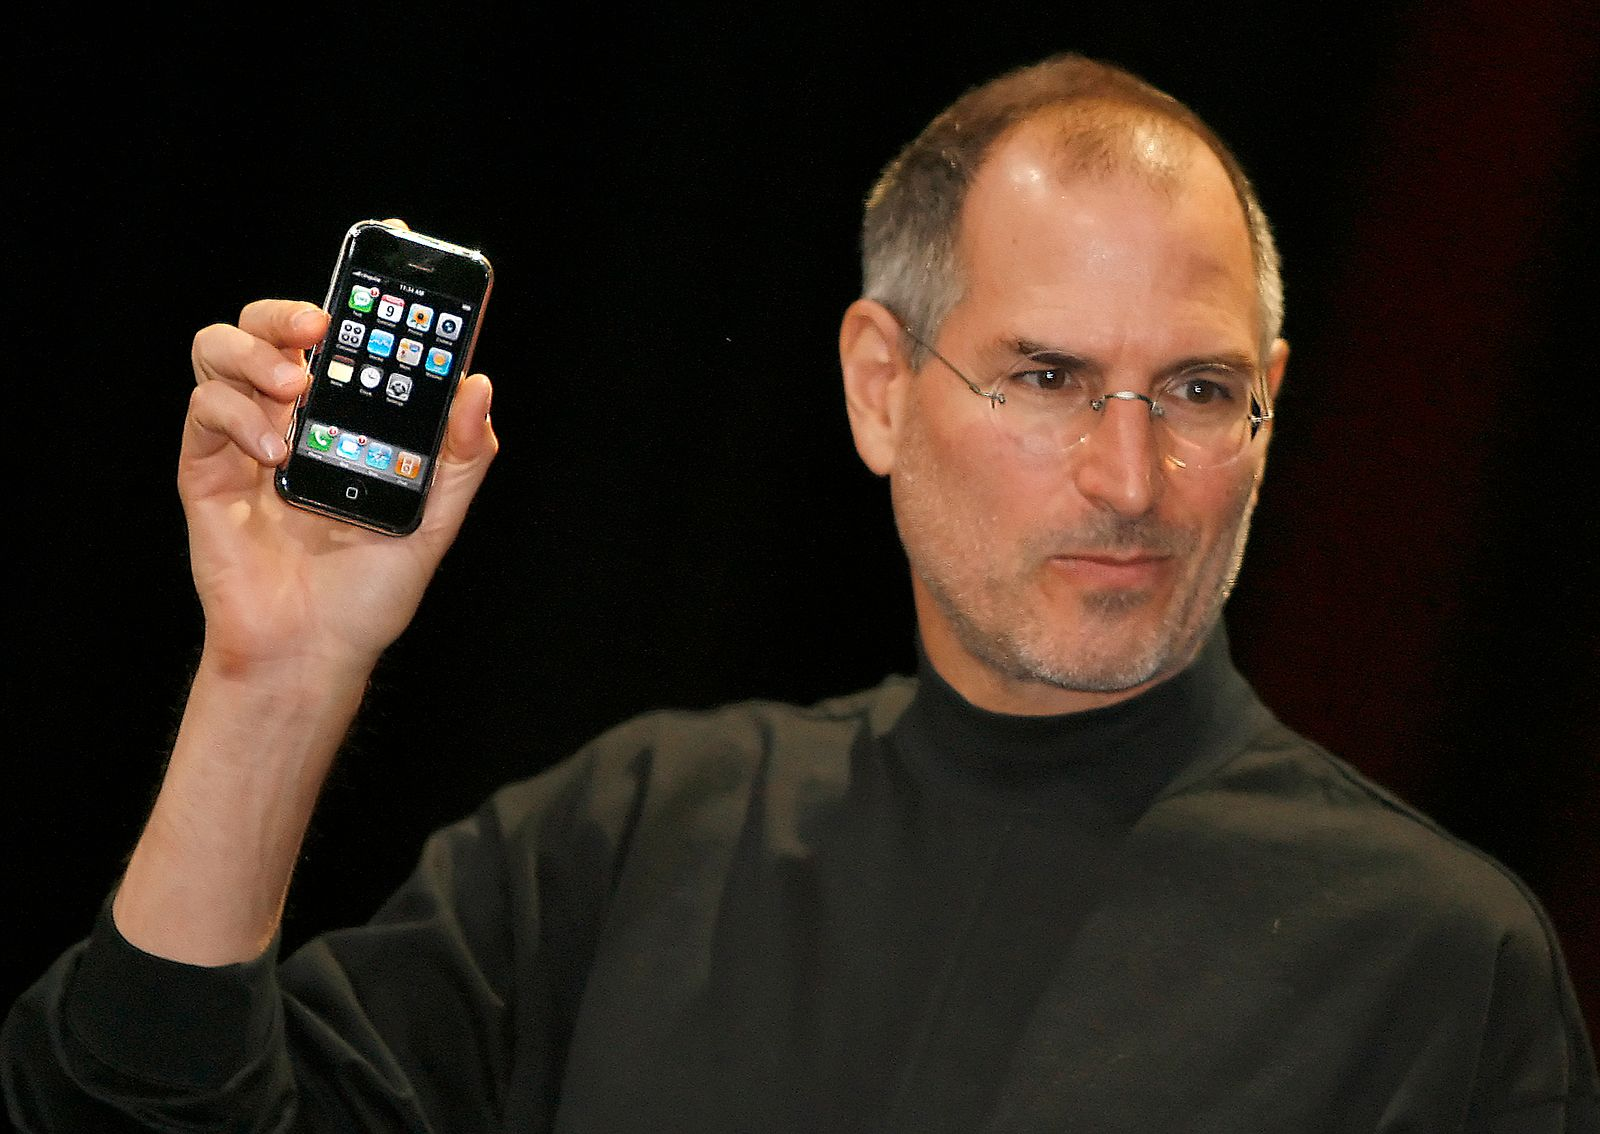 Apple / iPhone / Steve Jobs